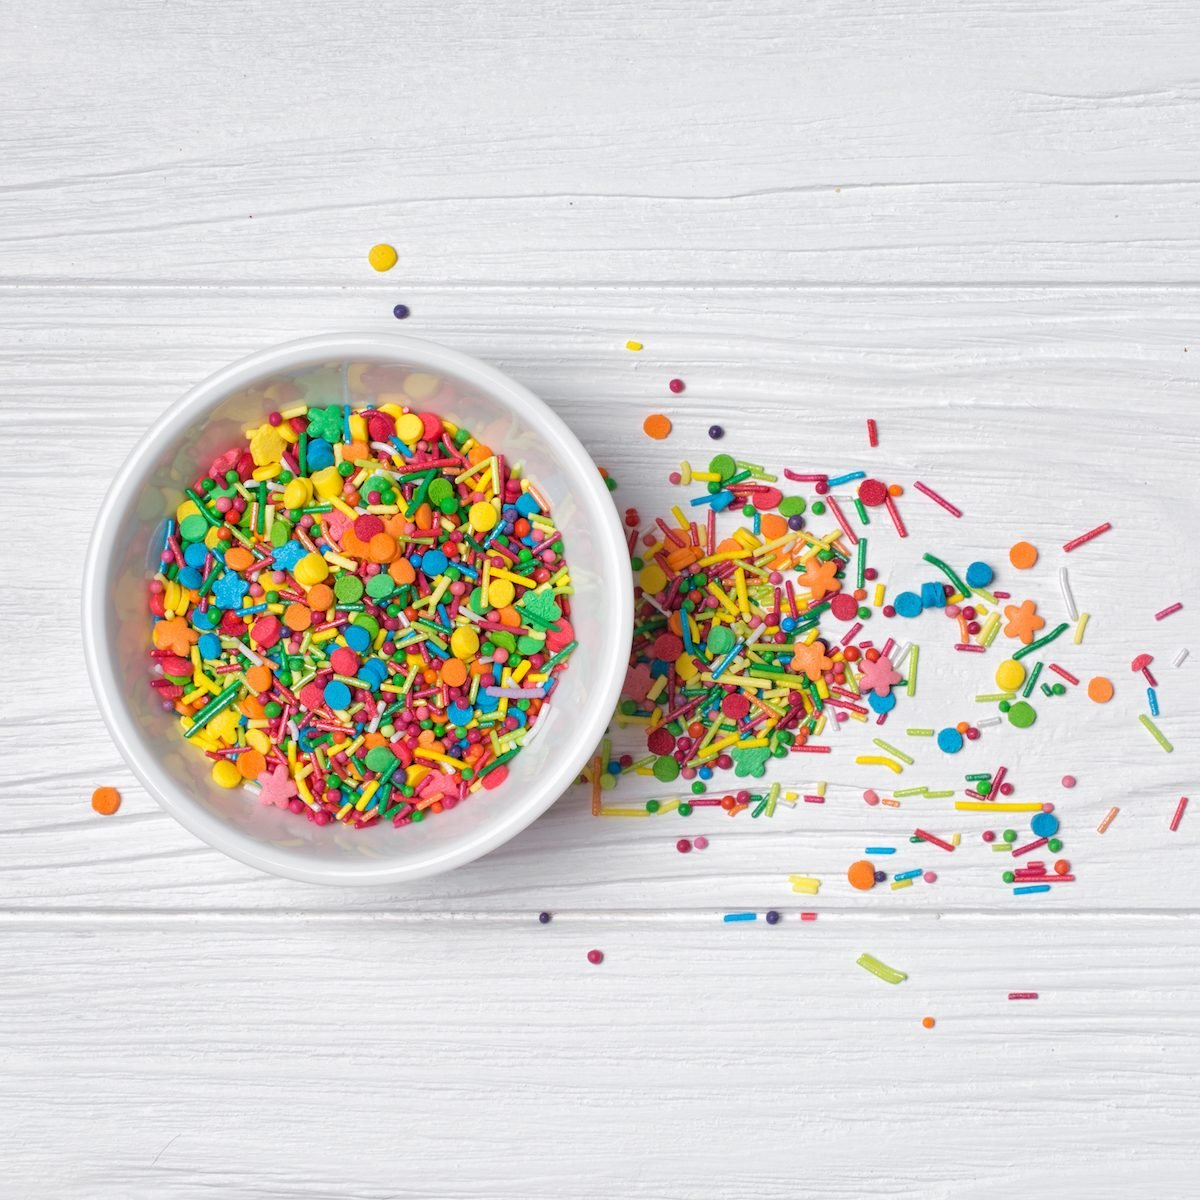 Top view of bright colorful sugar sprinkles or confetti in white bowl as baking decor